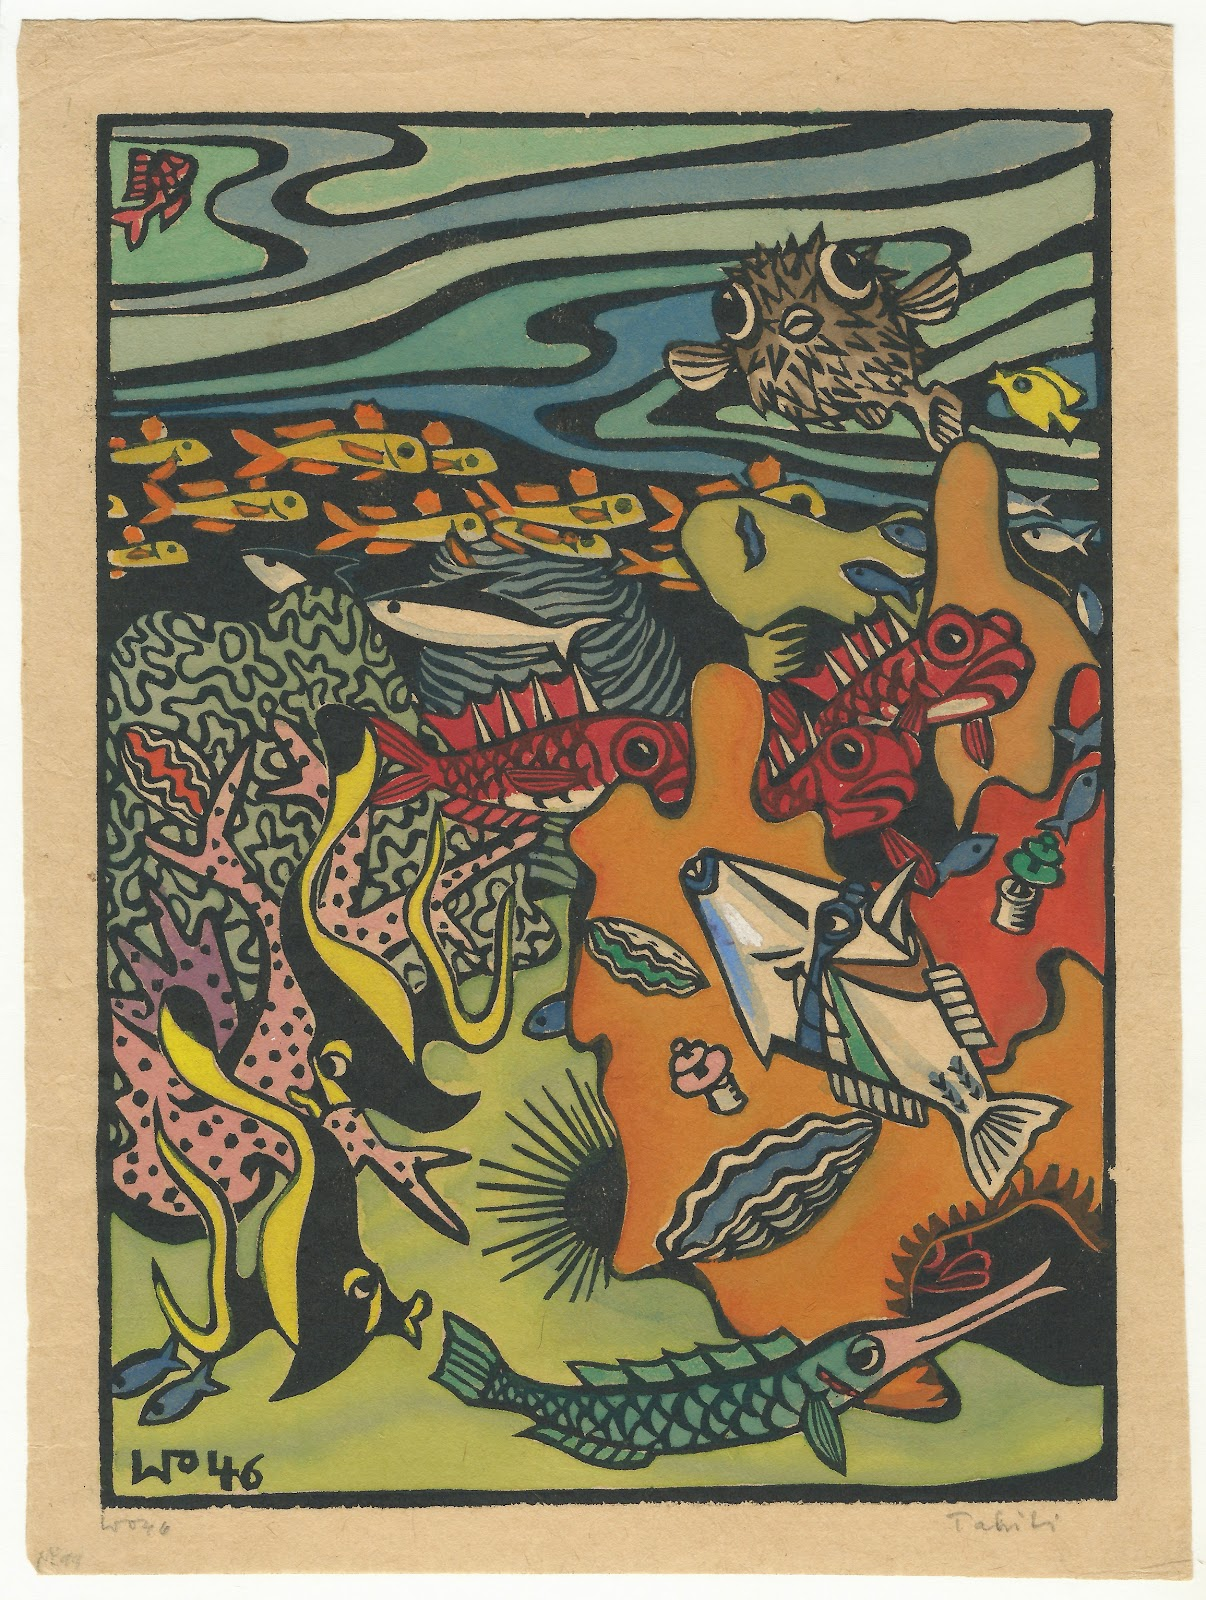 The reef, hand colored block print, 1946, family-owned